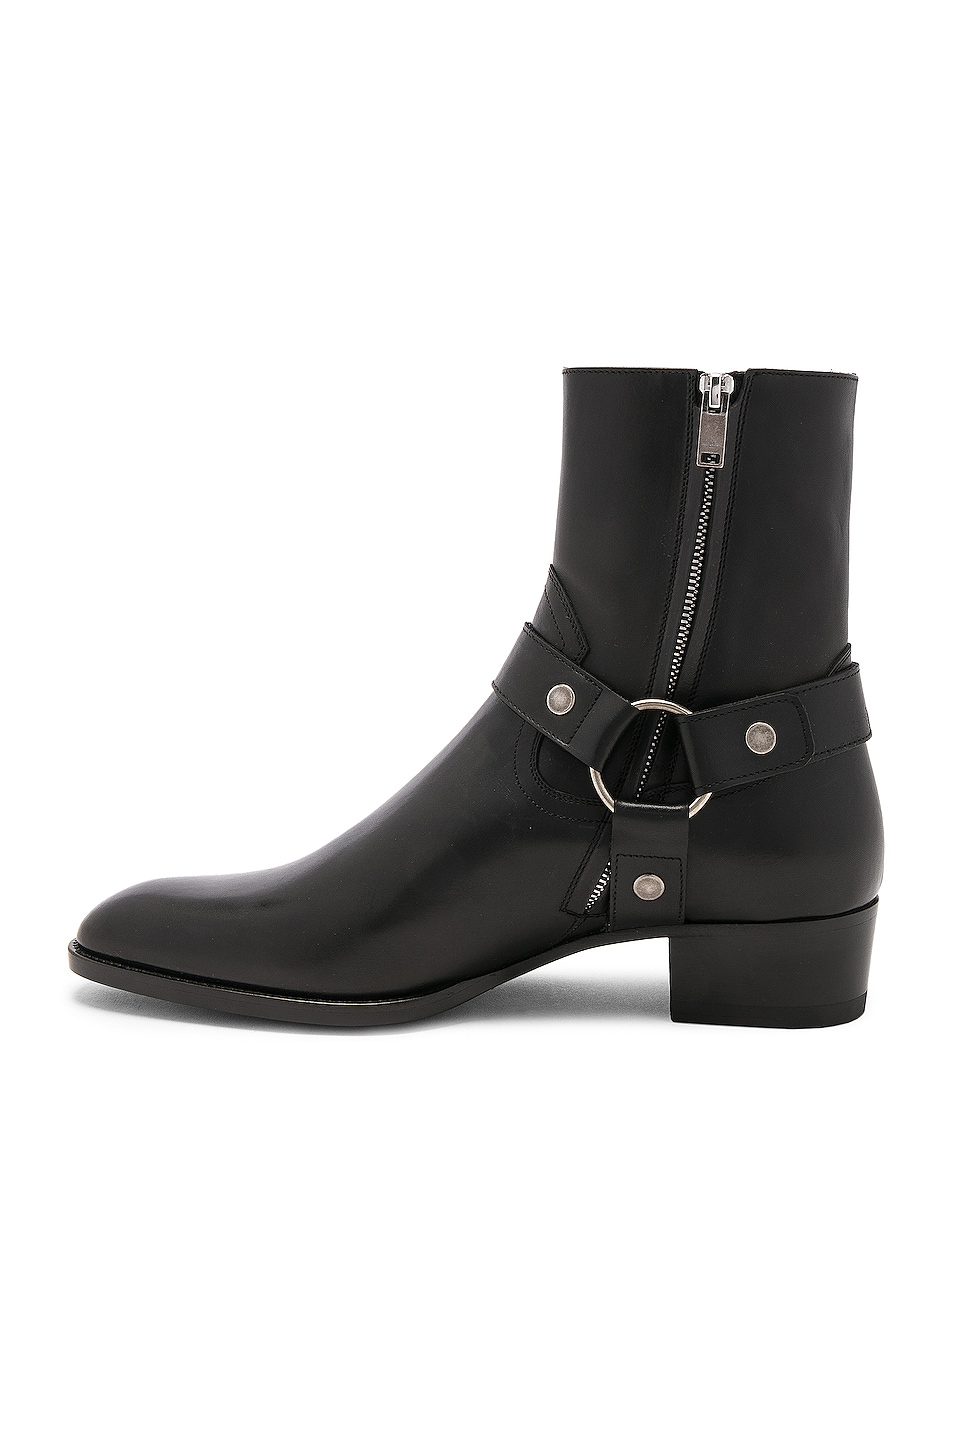 Image 5 of Saint Laurent Leather Wyatt Harness Boots in Black